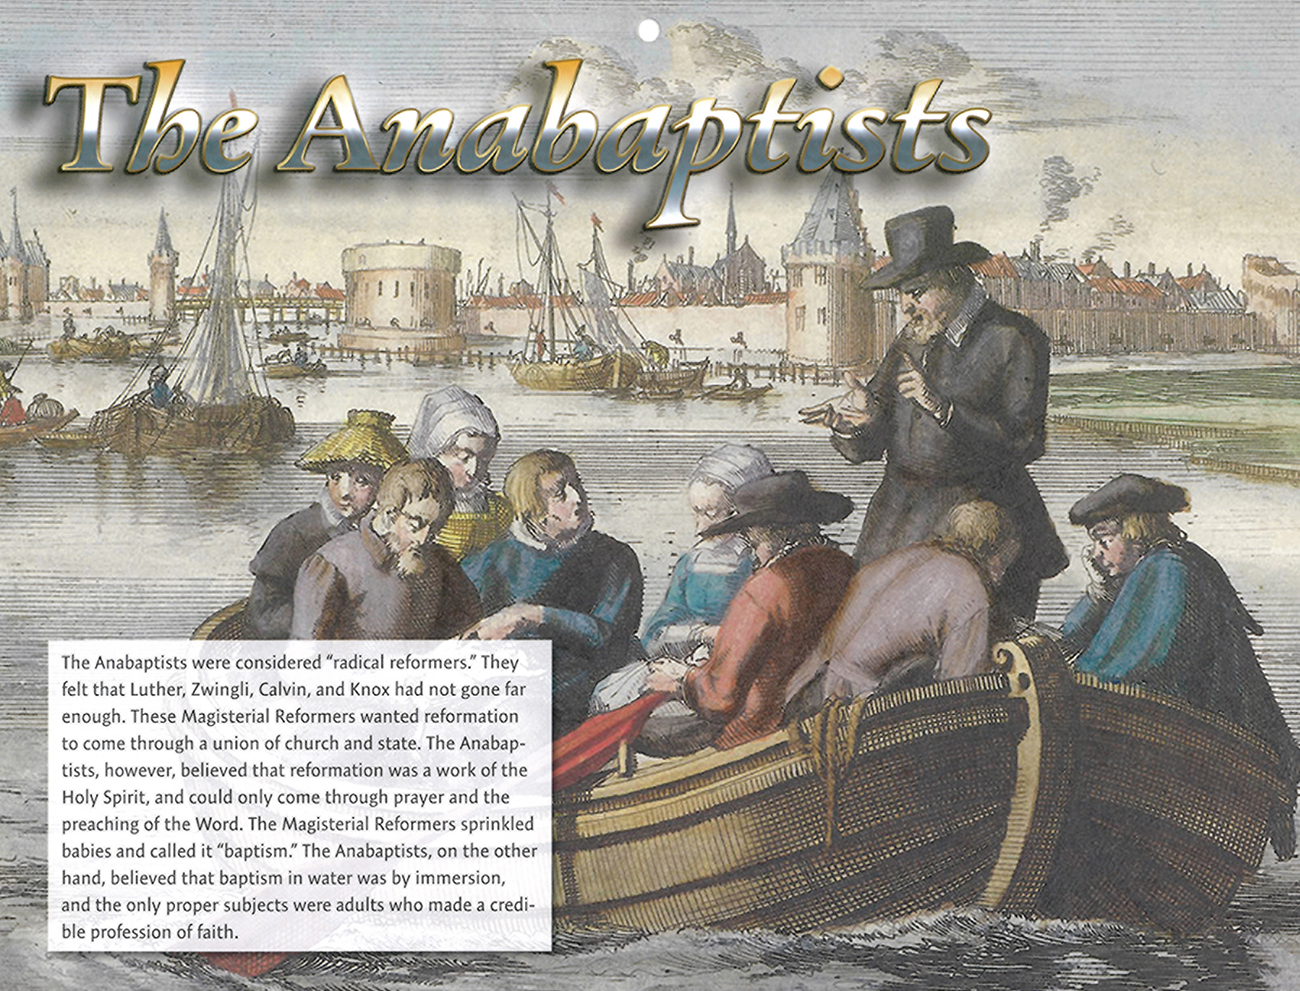 2016 Prophecy Calendar: October - The Anabaptists